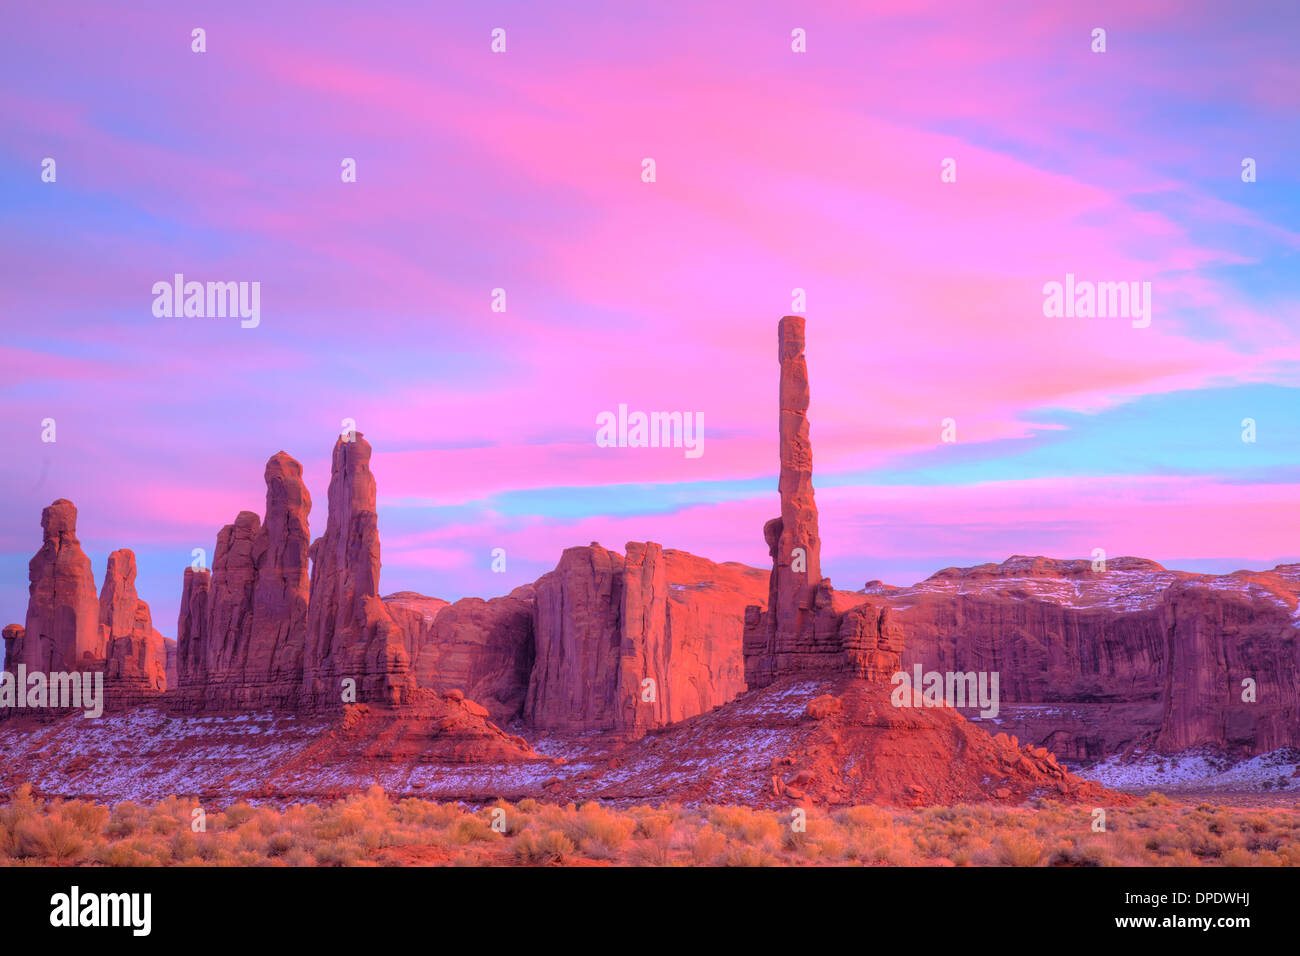 The Totem Pole at sunset, Monument Valley Tribal Park, Arizona Navajo Reservation, thin pinnacle of De Chelly sandstone - Stock Image